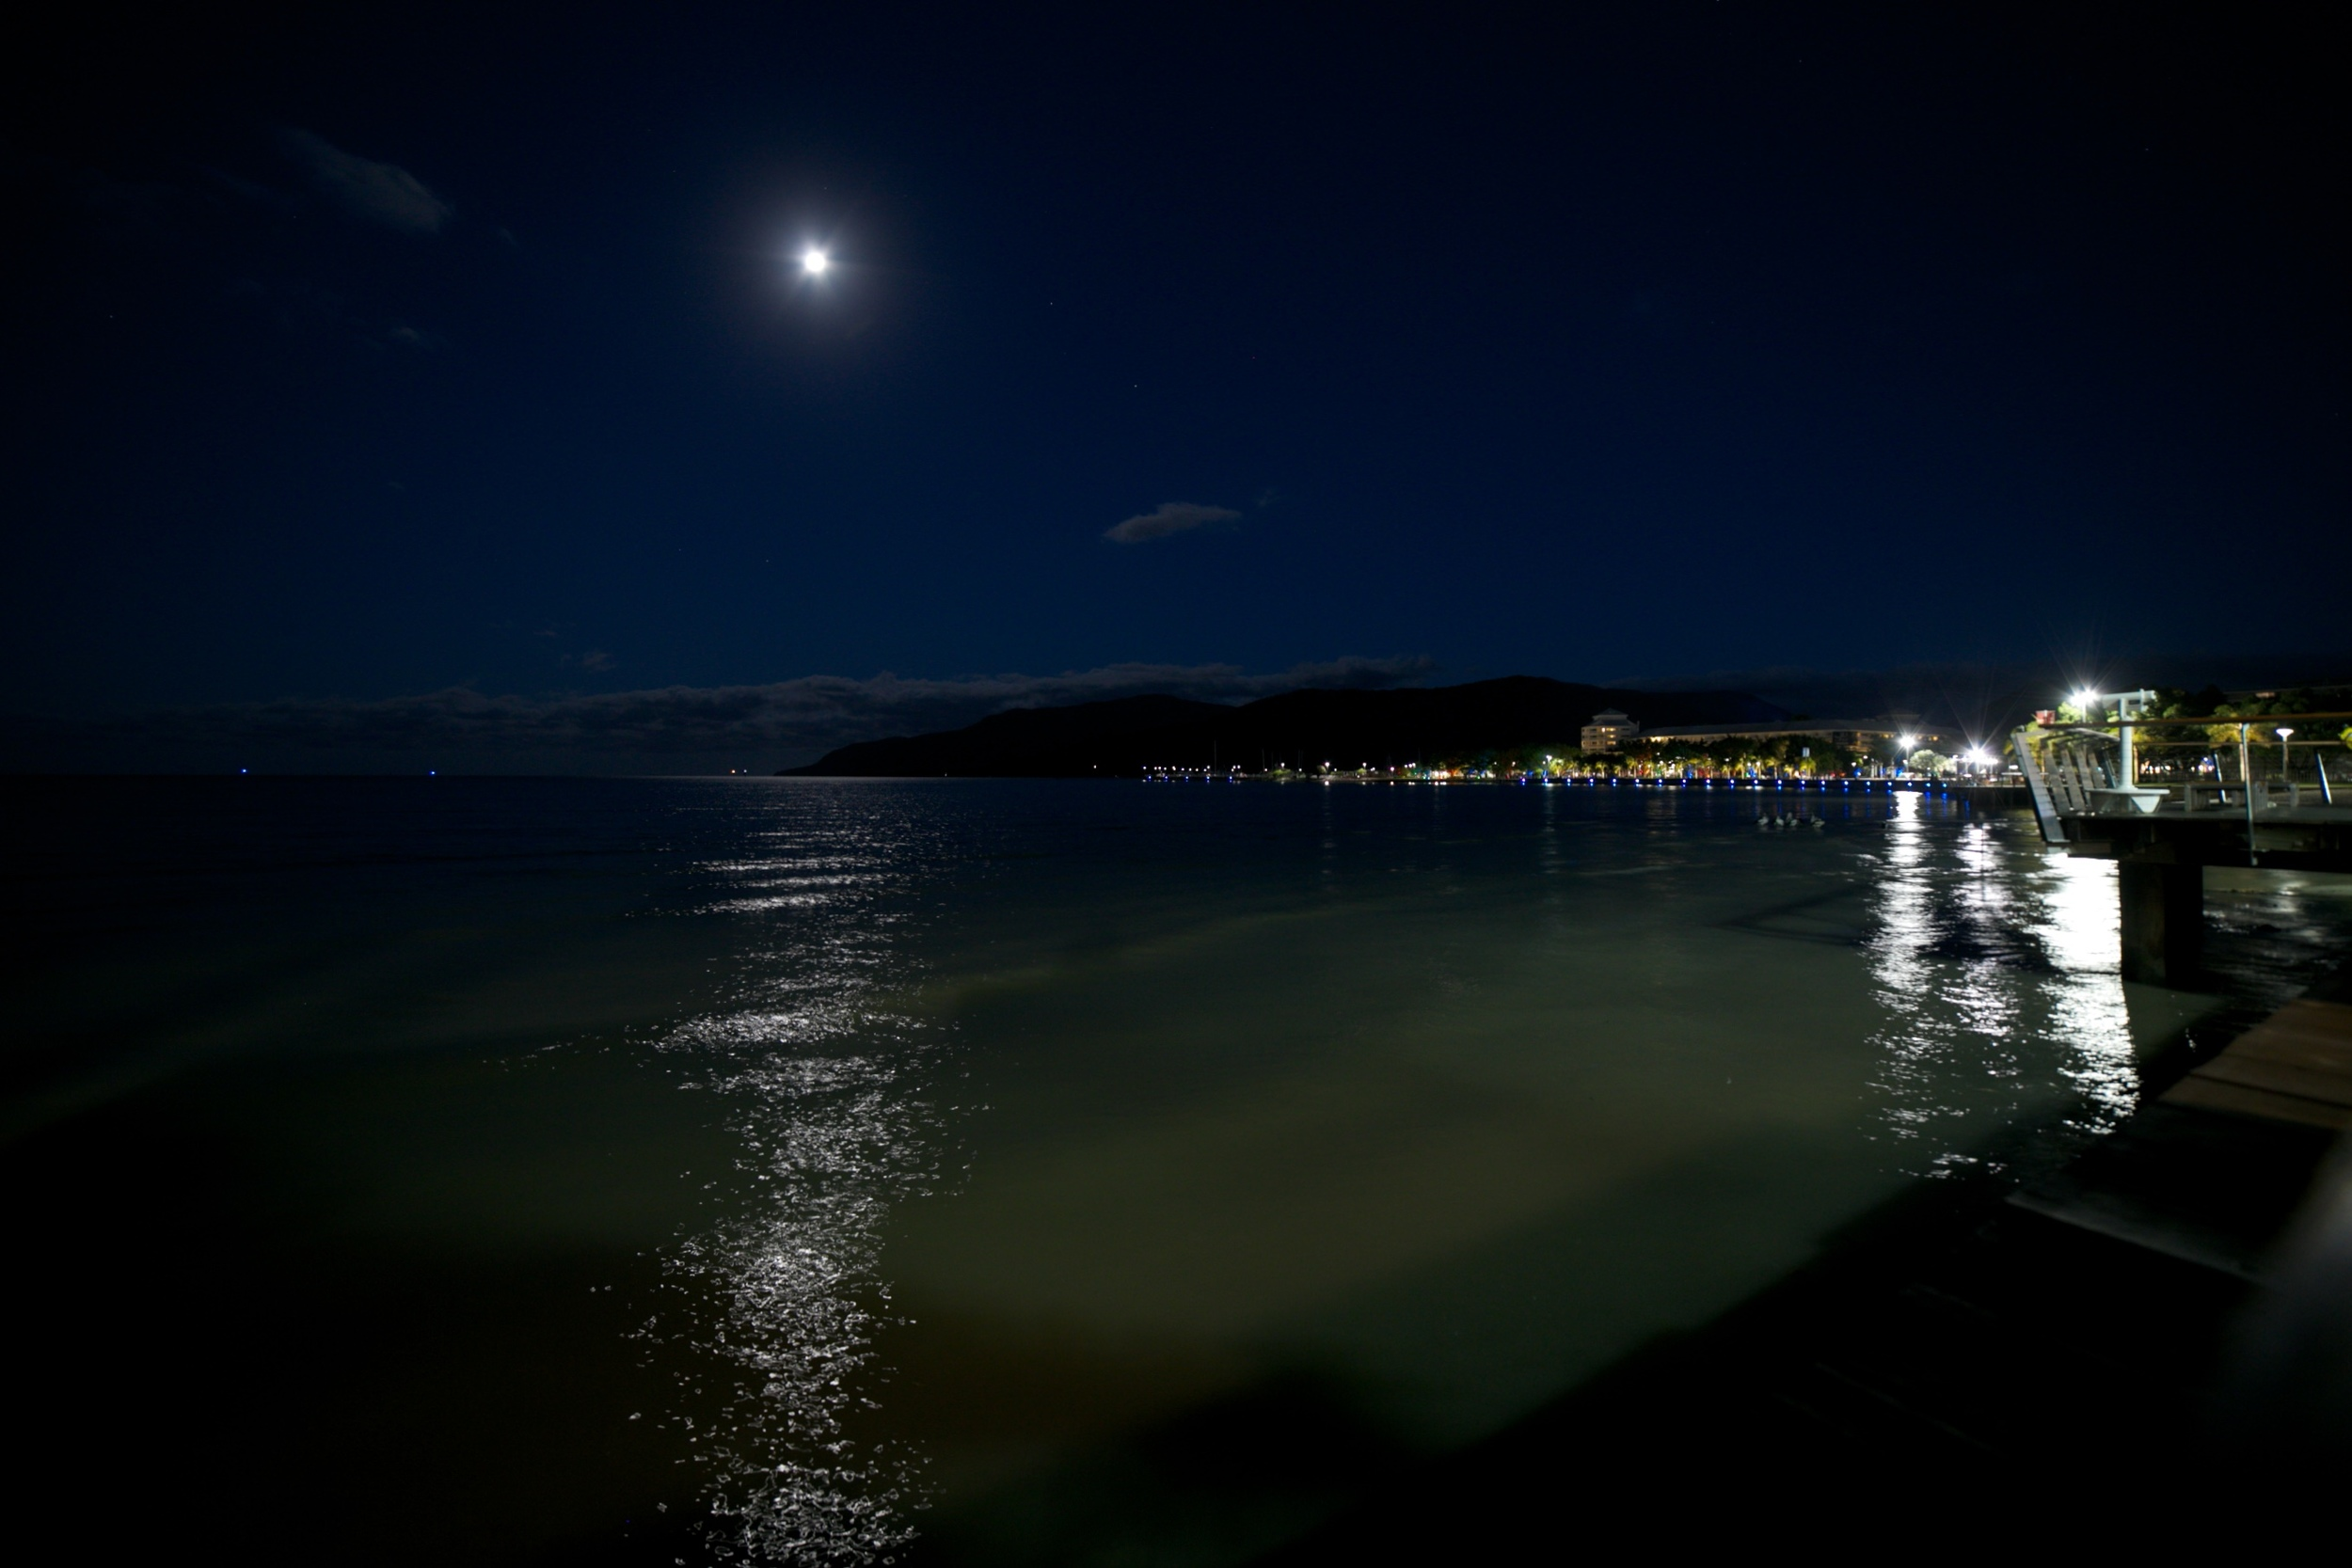 The full moon over Cannes shoreline and city lights.